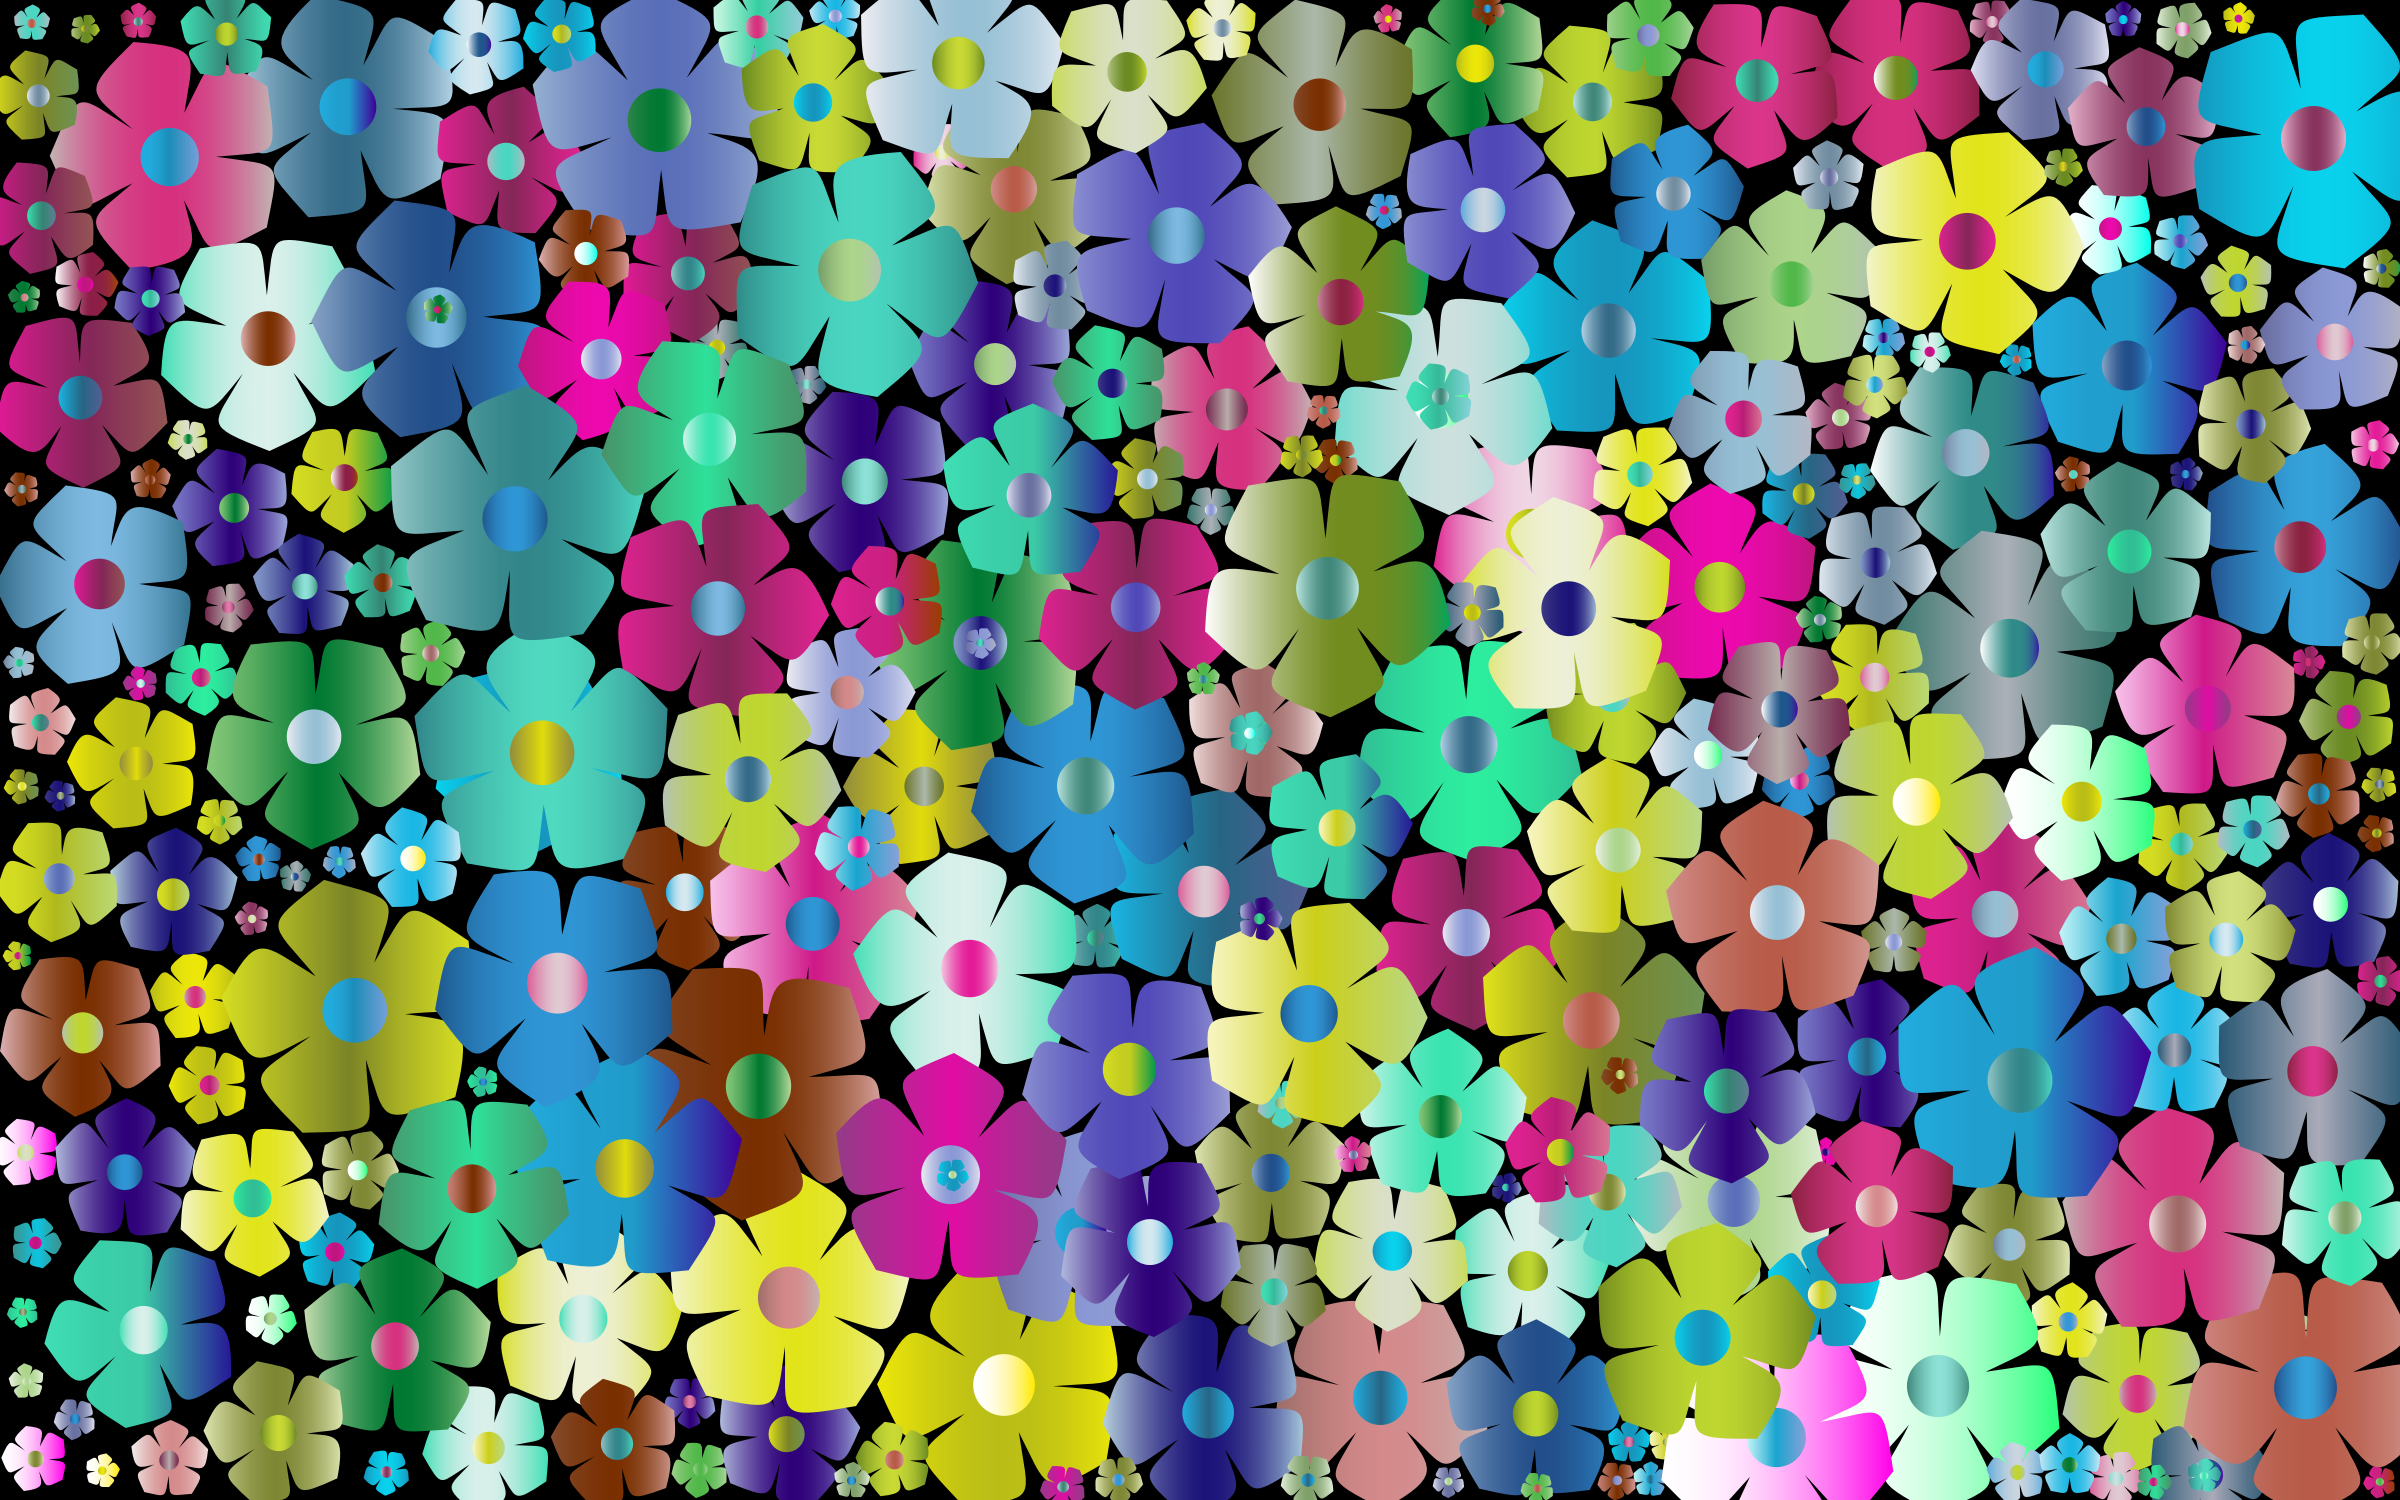 Simple Floral Background 3 by GDJ